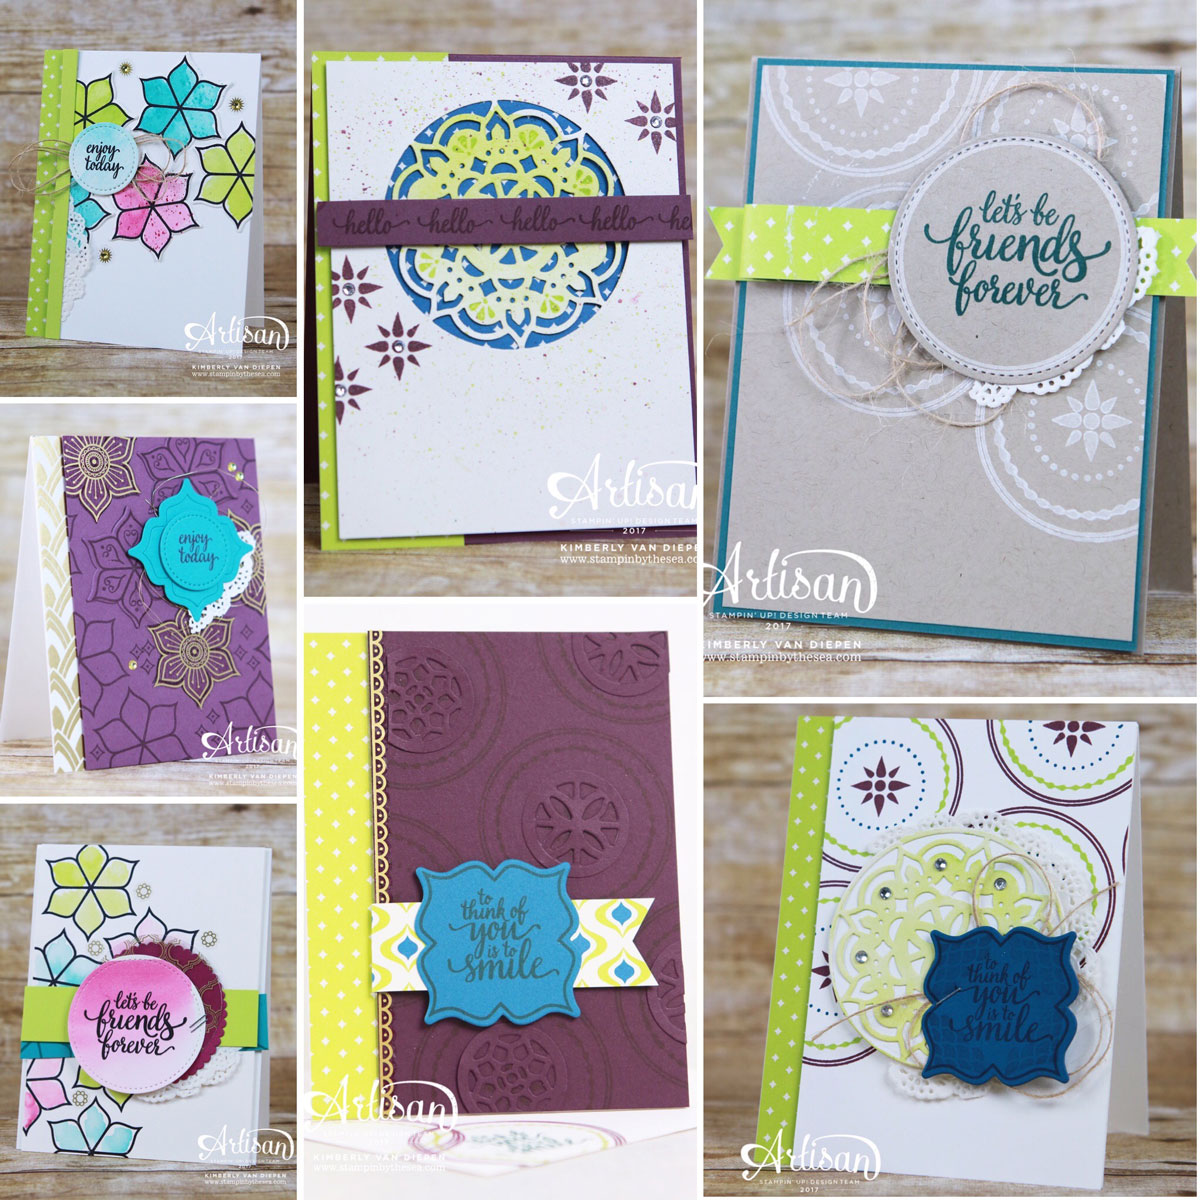 Card Buffet, Eastern Palace, Stampin' Up!